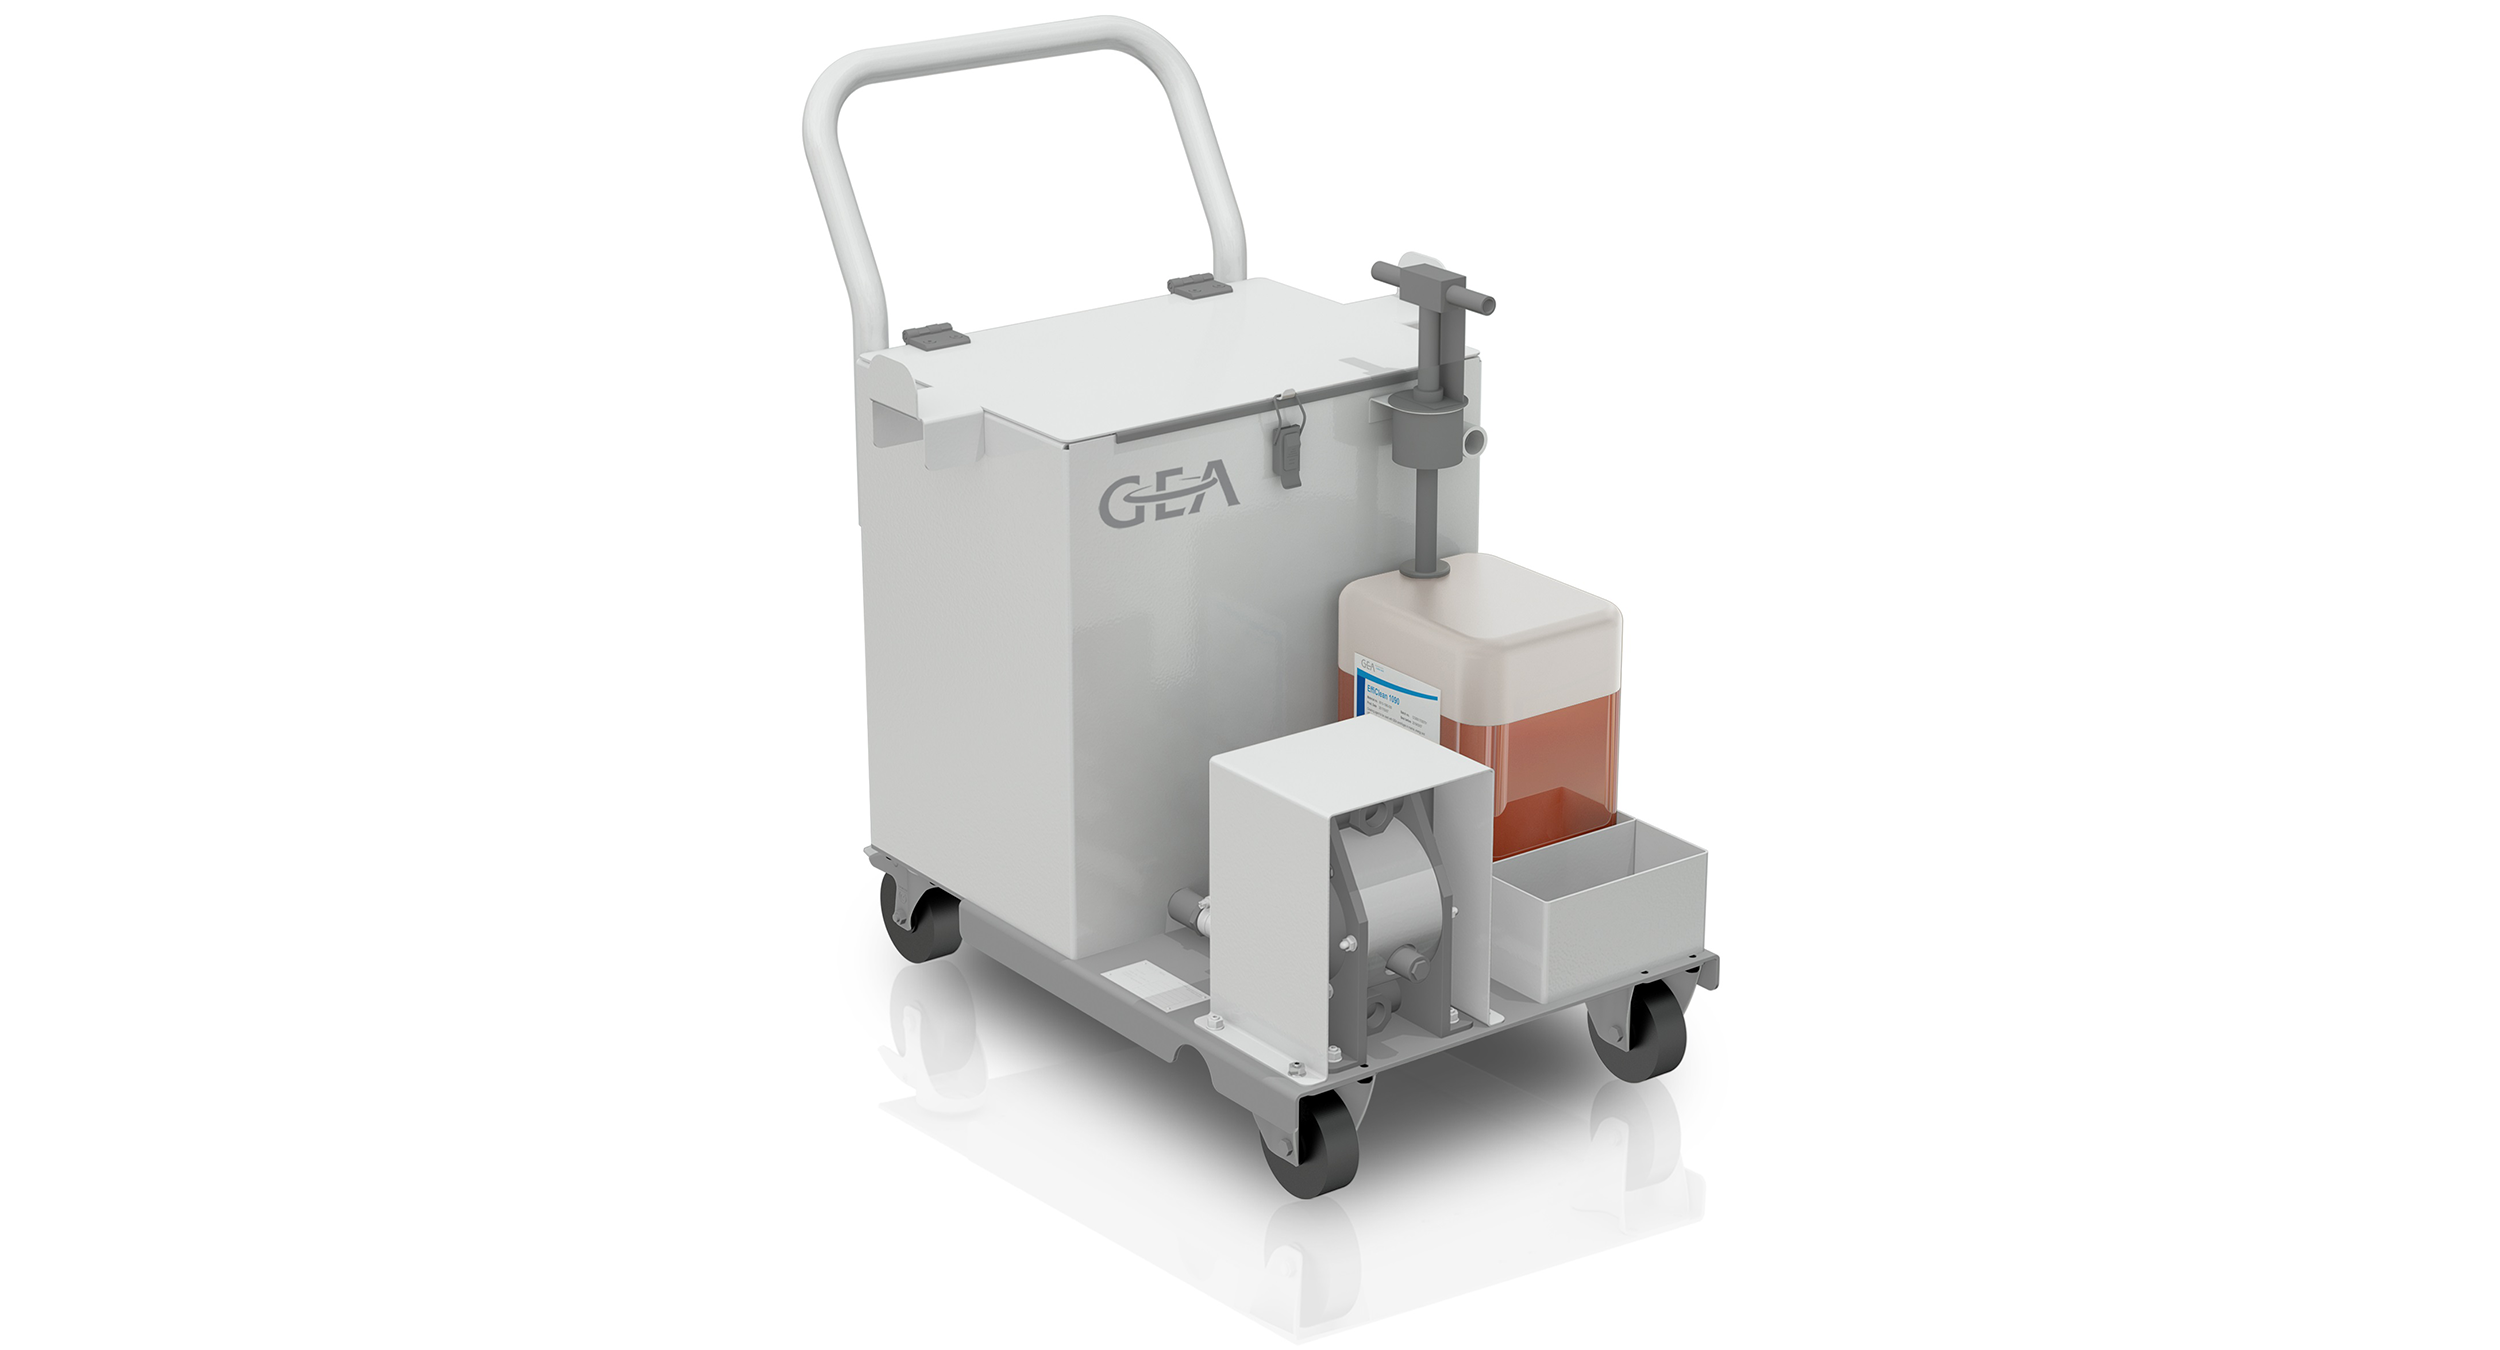 The GEA EffiClean system consists of a cleaning unit and the GEA EffiClean 1090 cleaning agent.